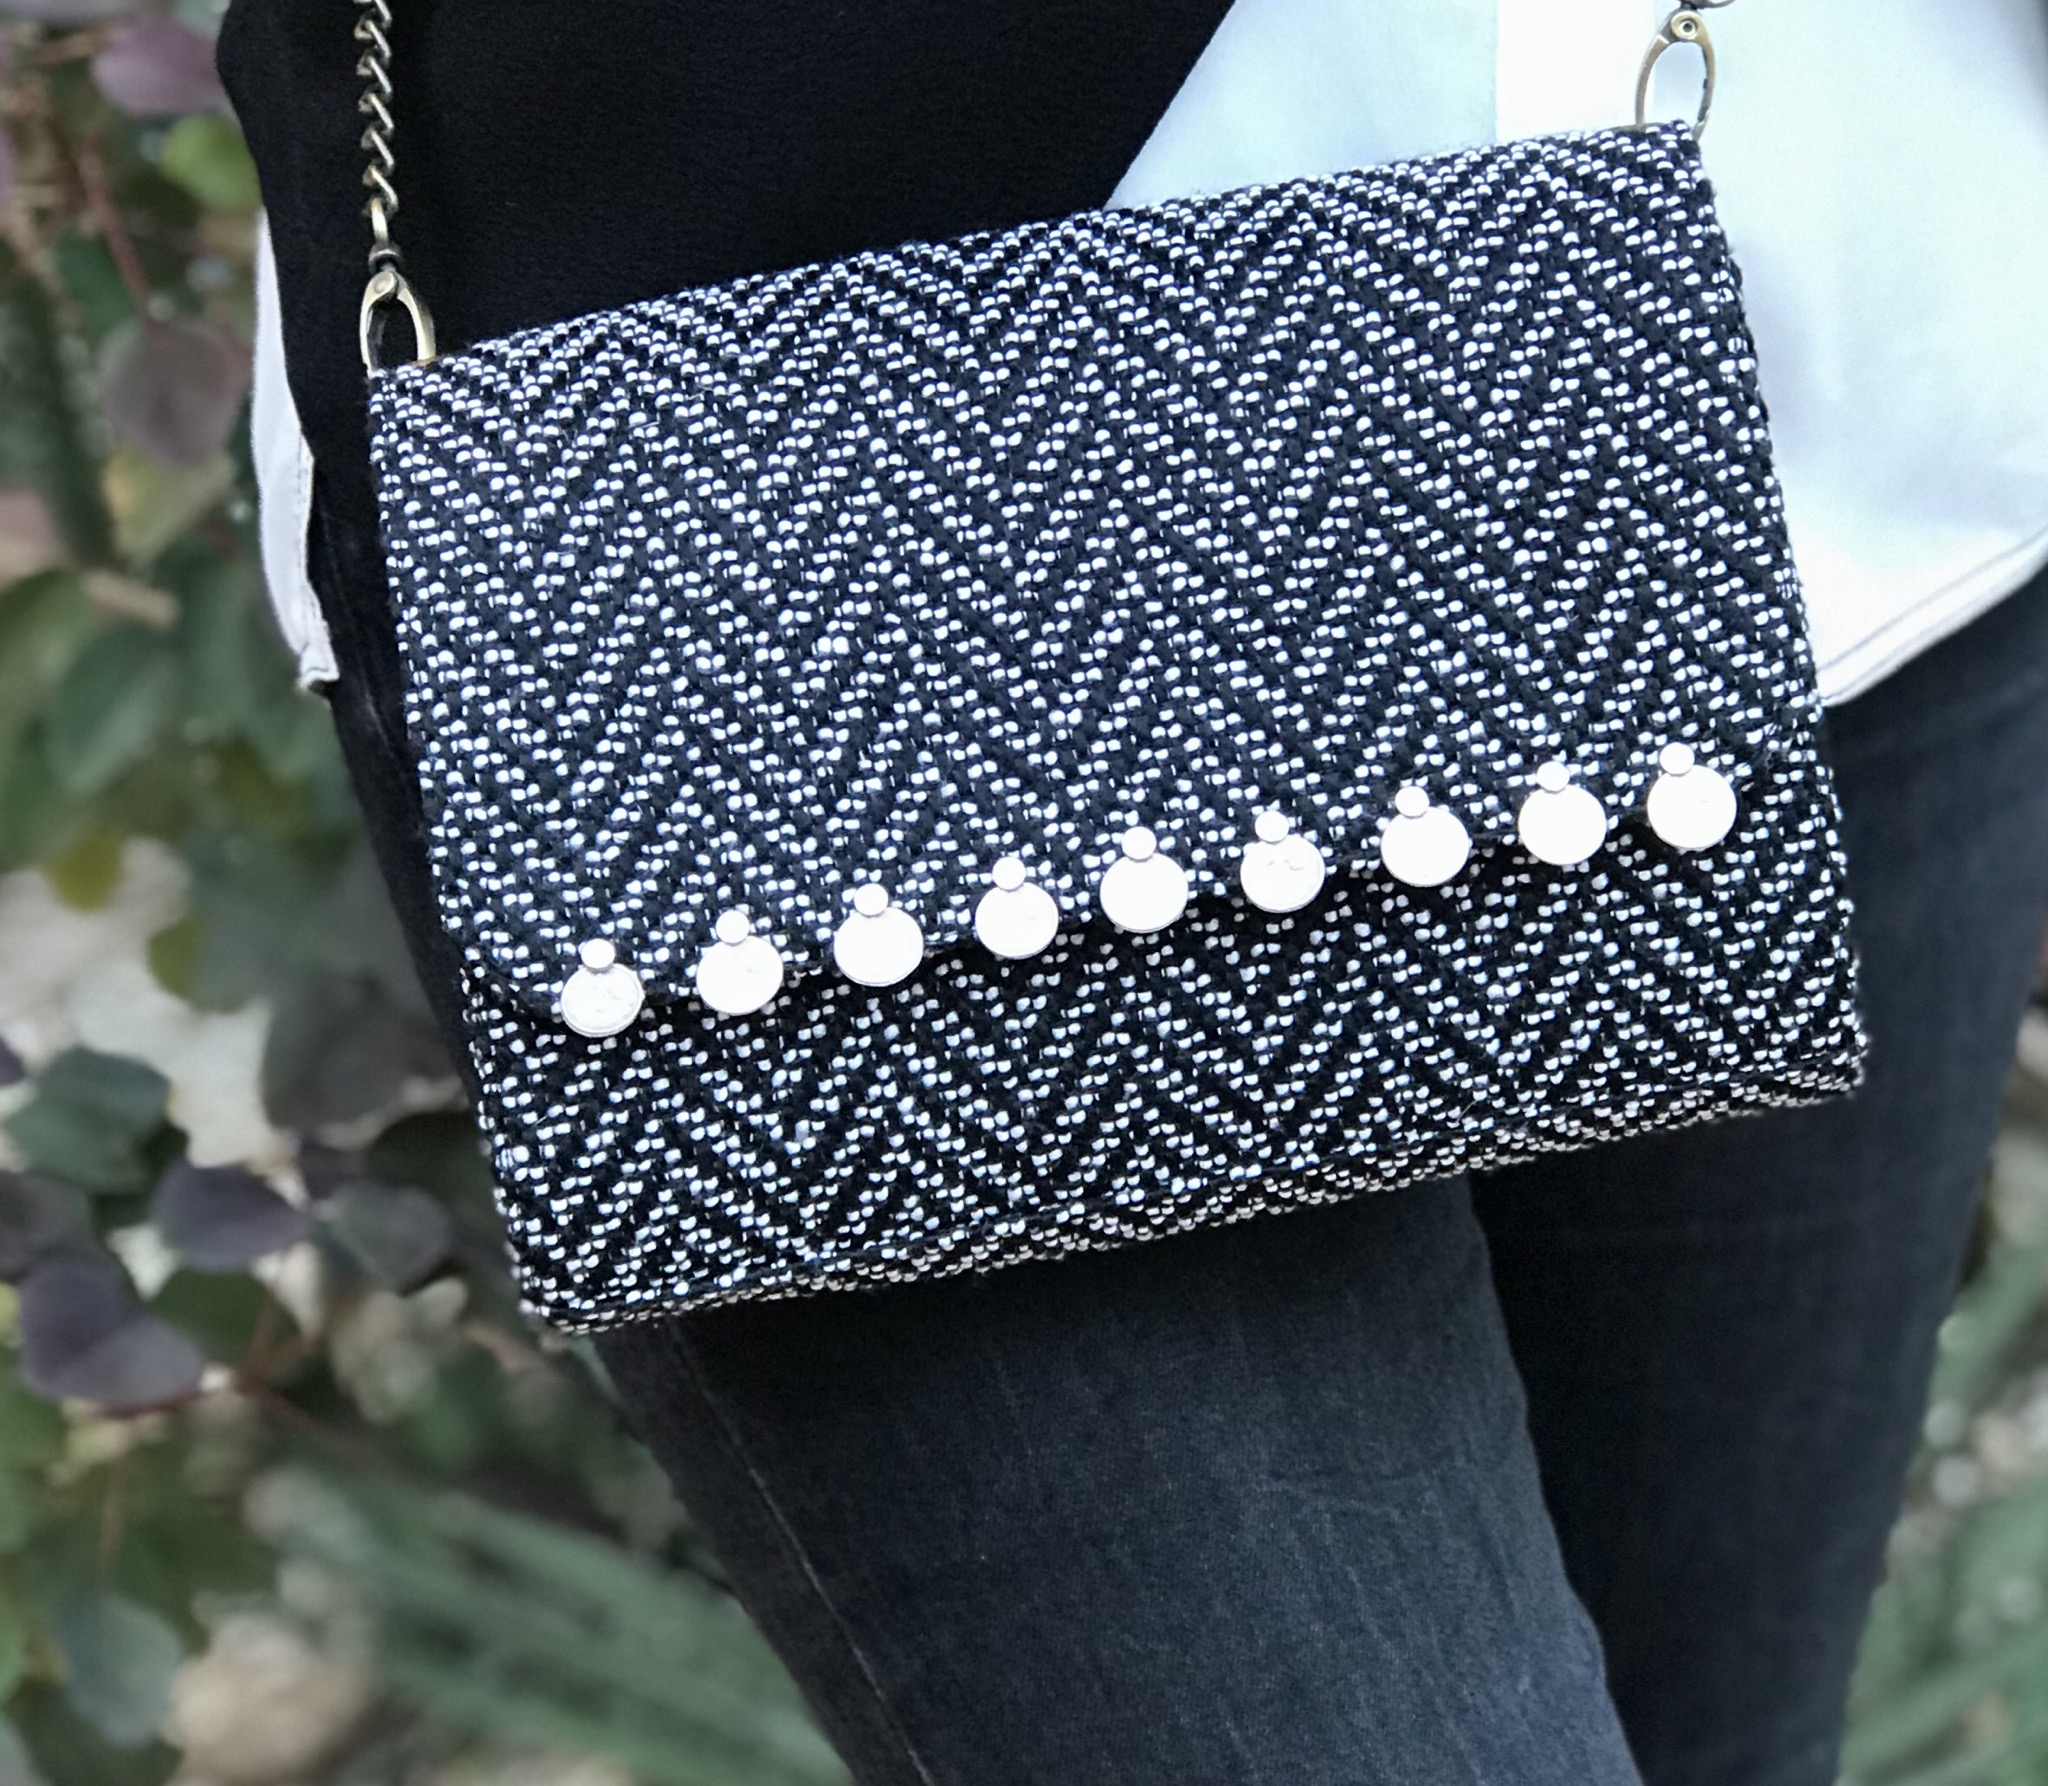 Bag tweed black & white with coins